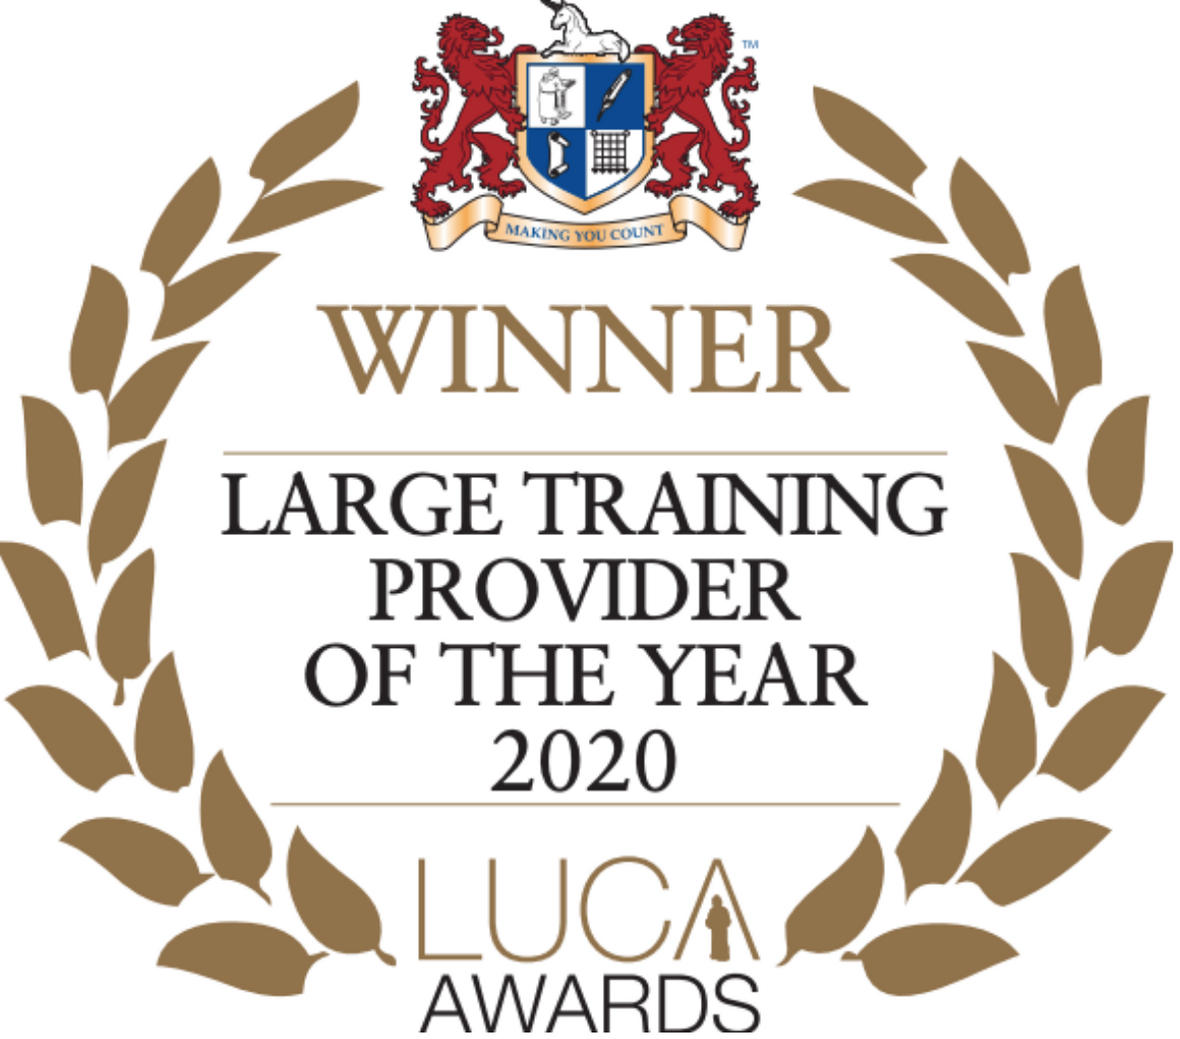 Large Training Provider of The Year 2020